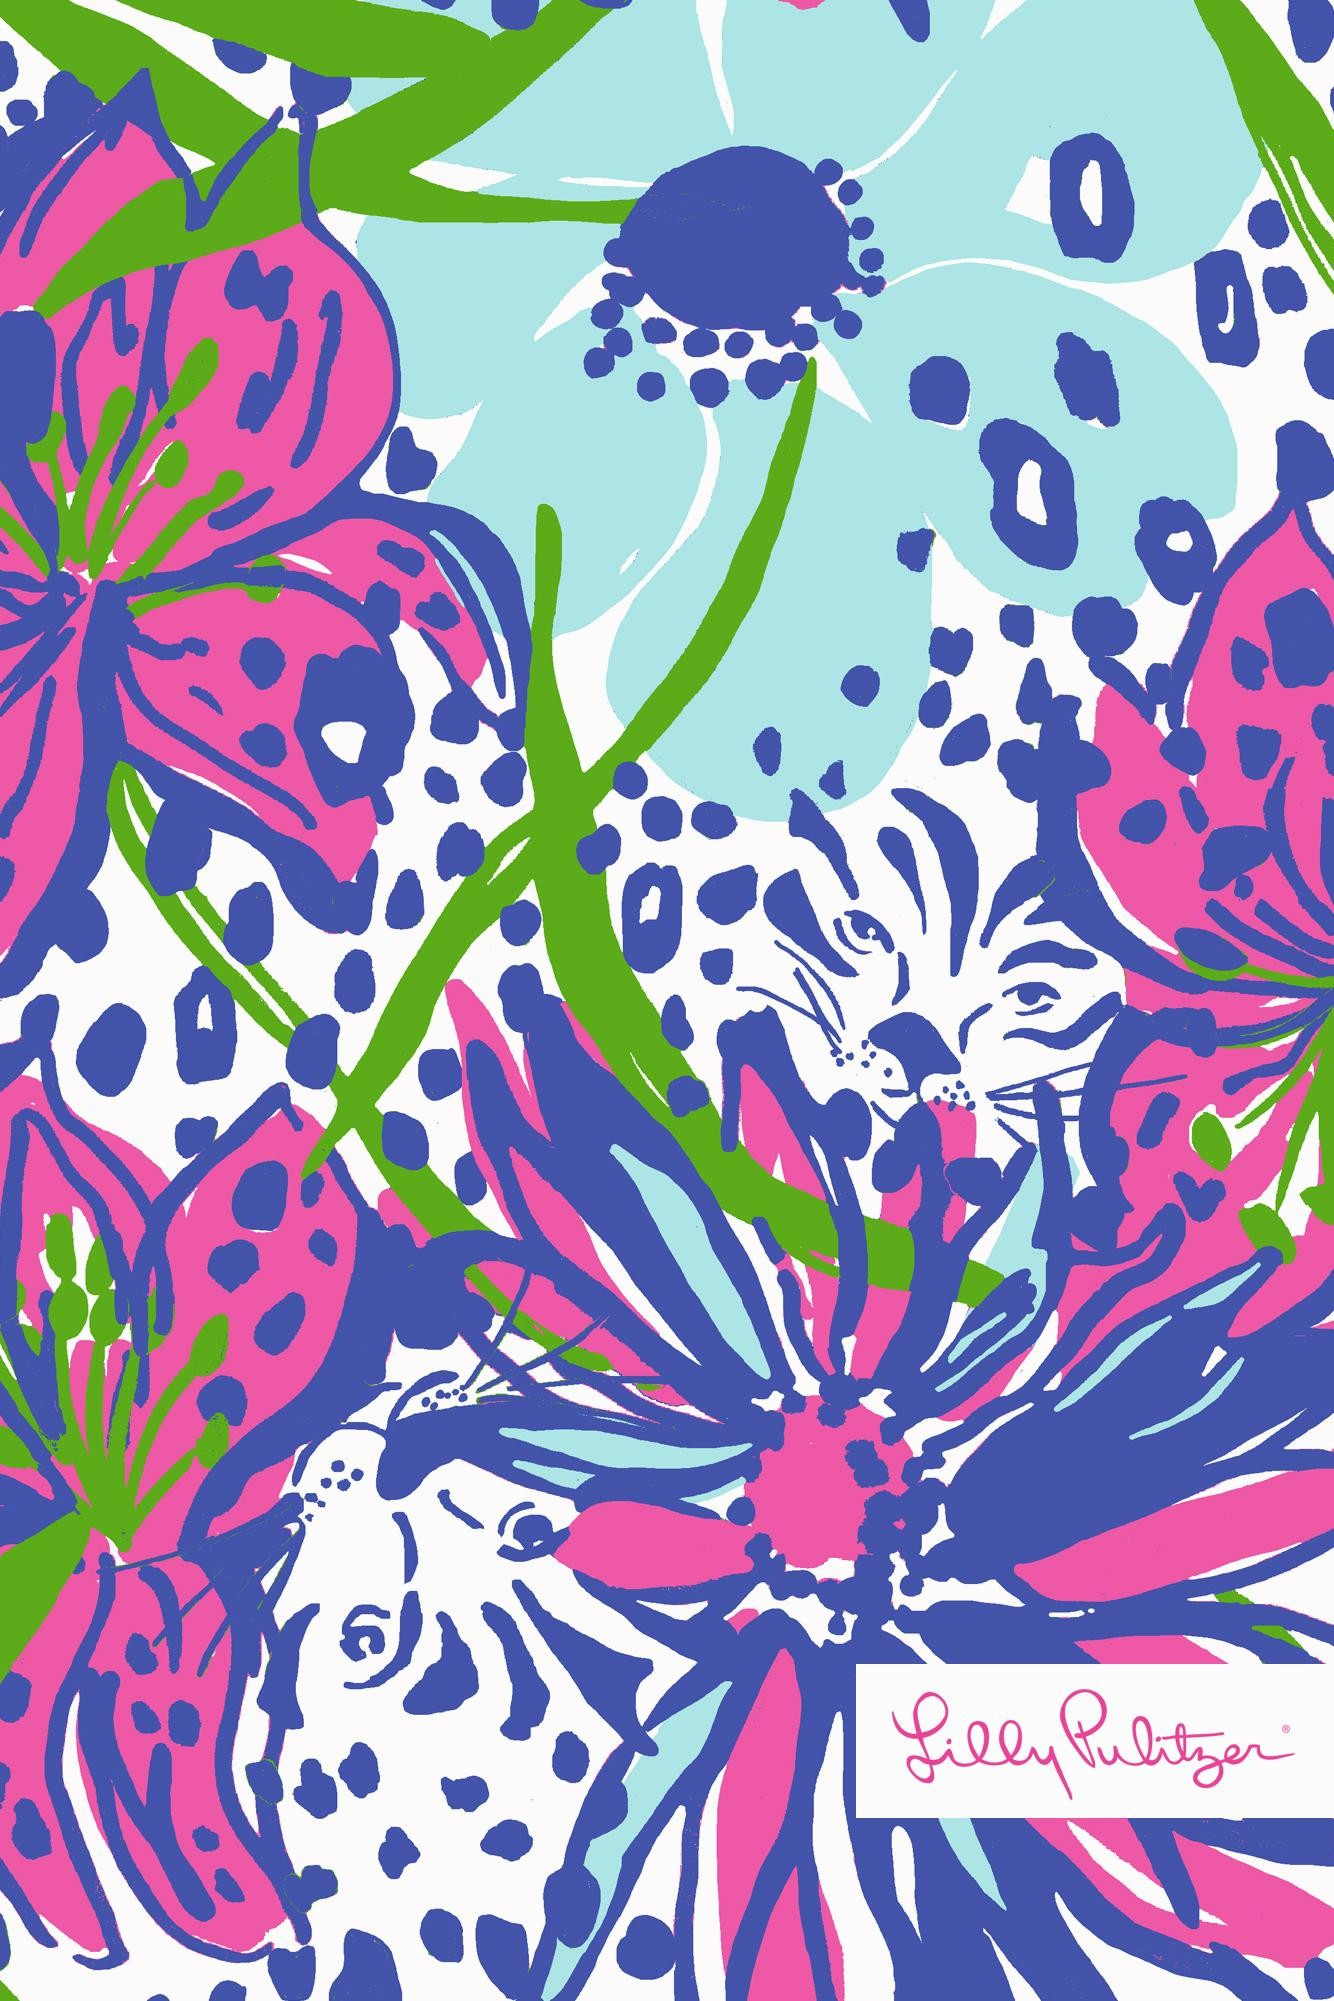 Lilly-Pulitzer-In-the-Garden-wallpaper-for-iPhone-